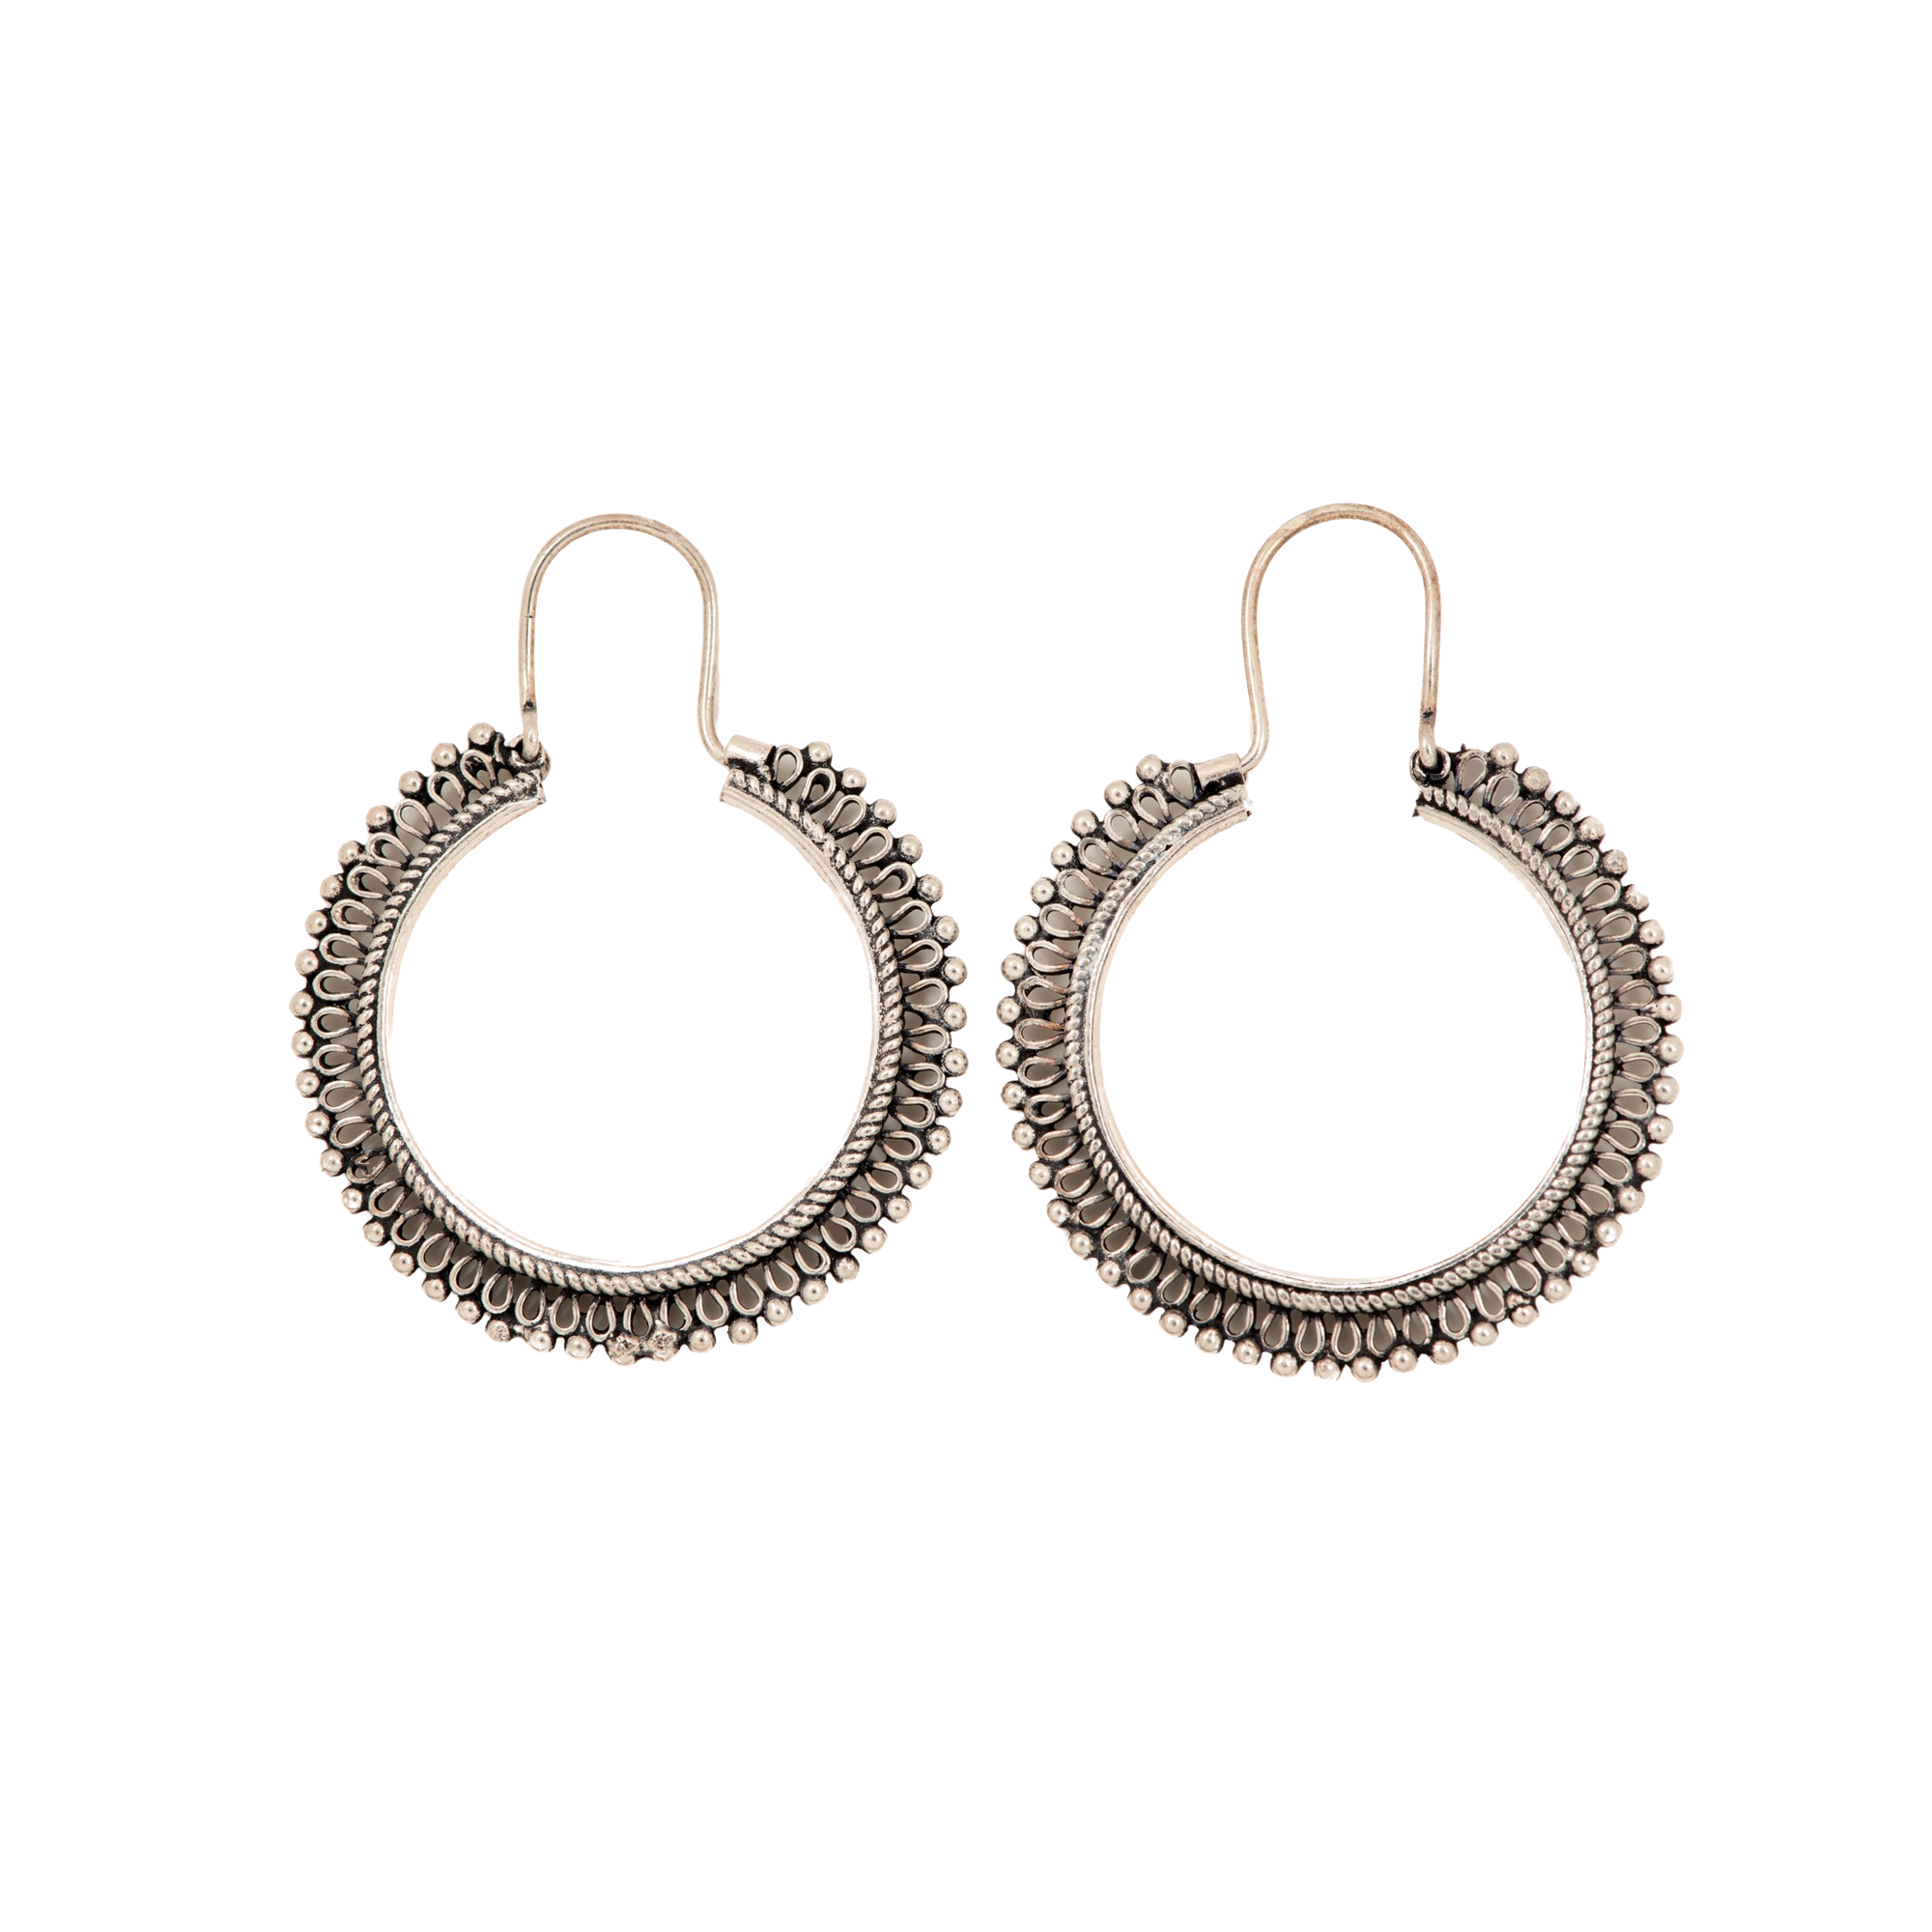 Scalloped Silver Hoops